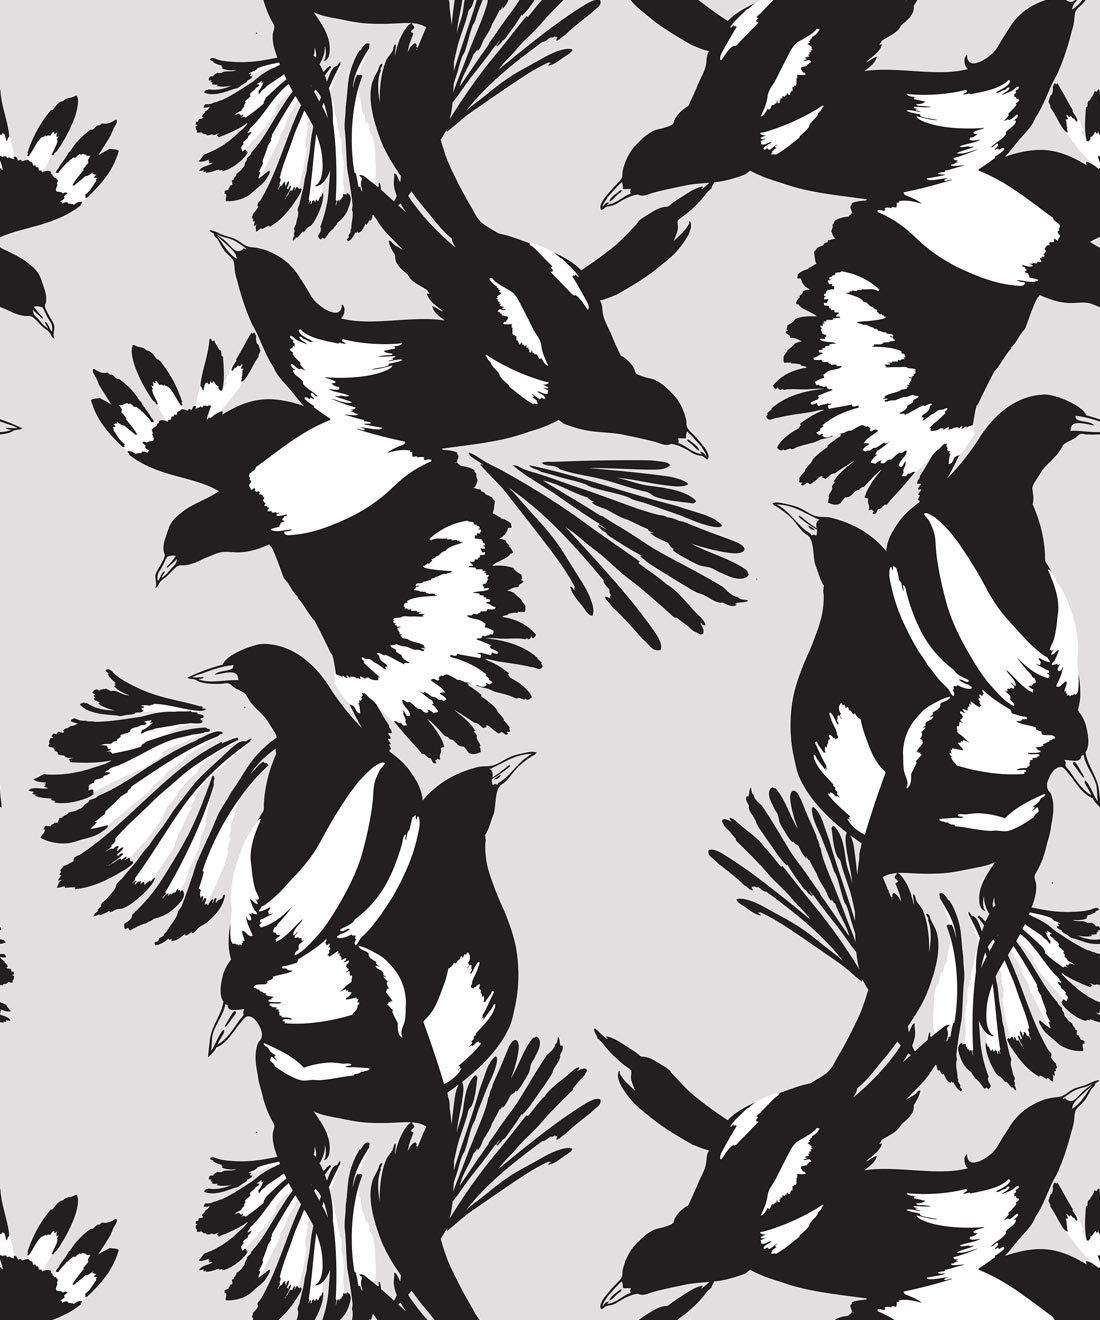 magpie wallpaper australian bird wallpaper pattern milton king usa